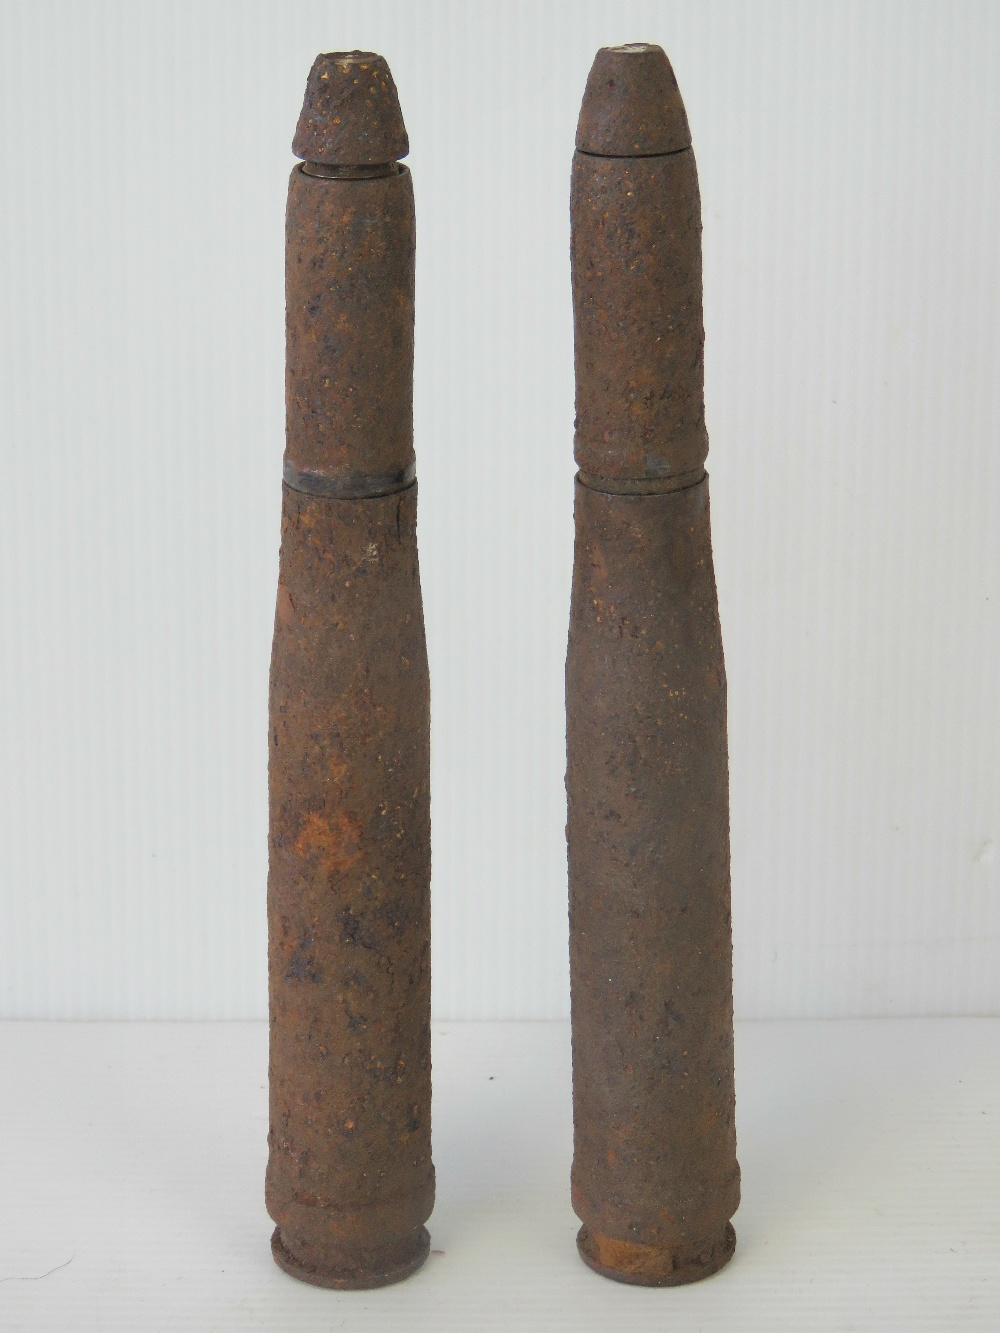 Lot 48 - Two inert German rounds in relic condition, each measuring 20.5cm in length.